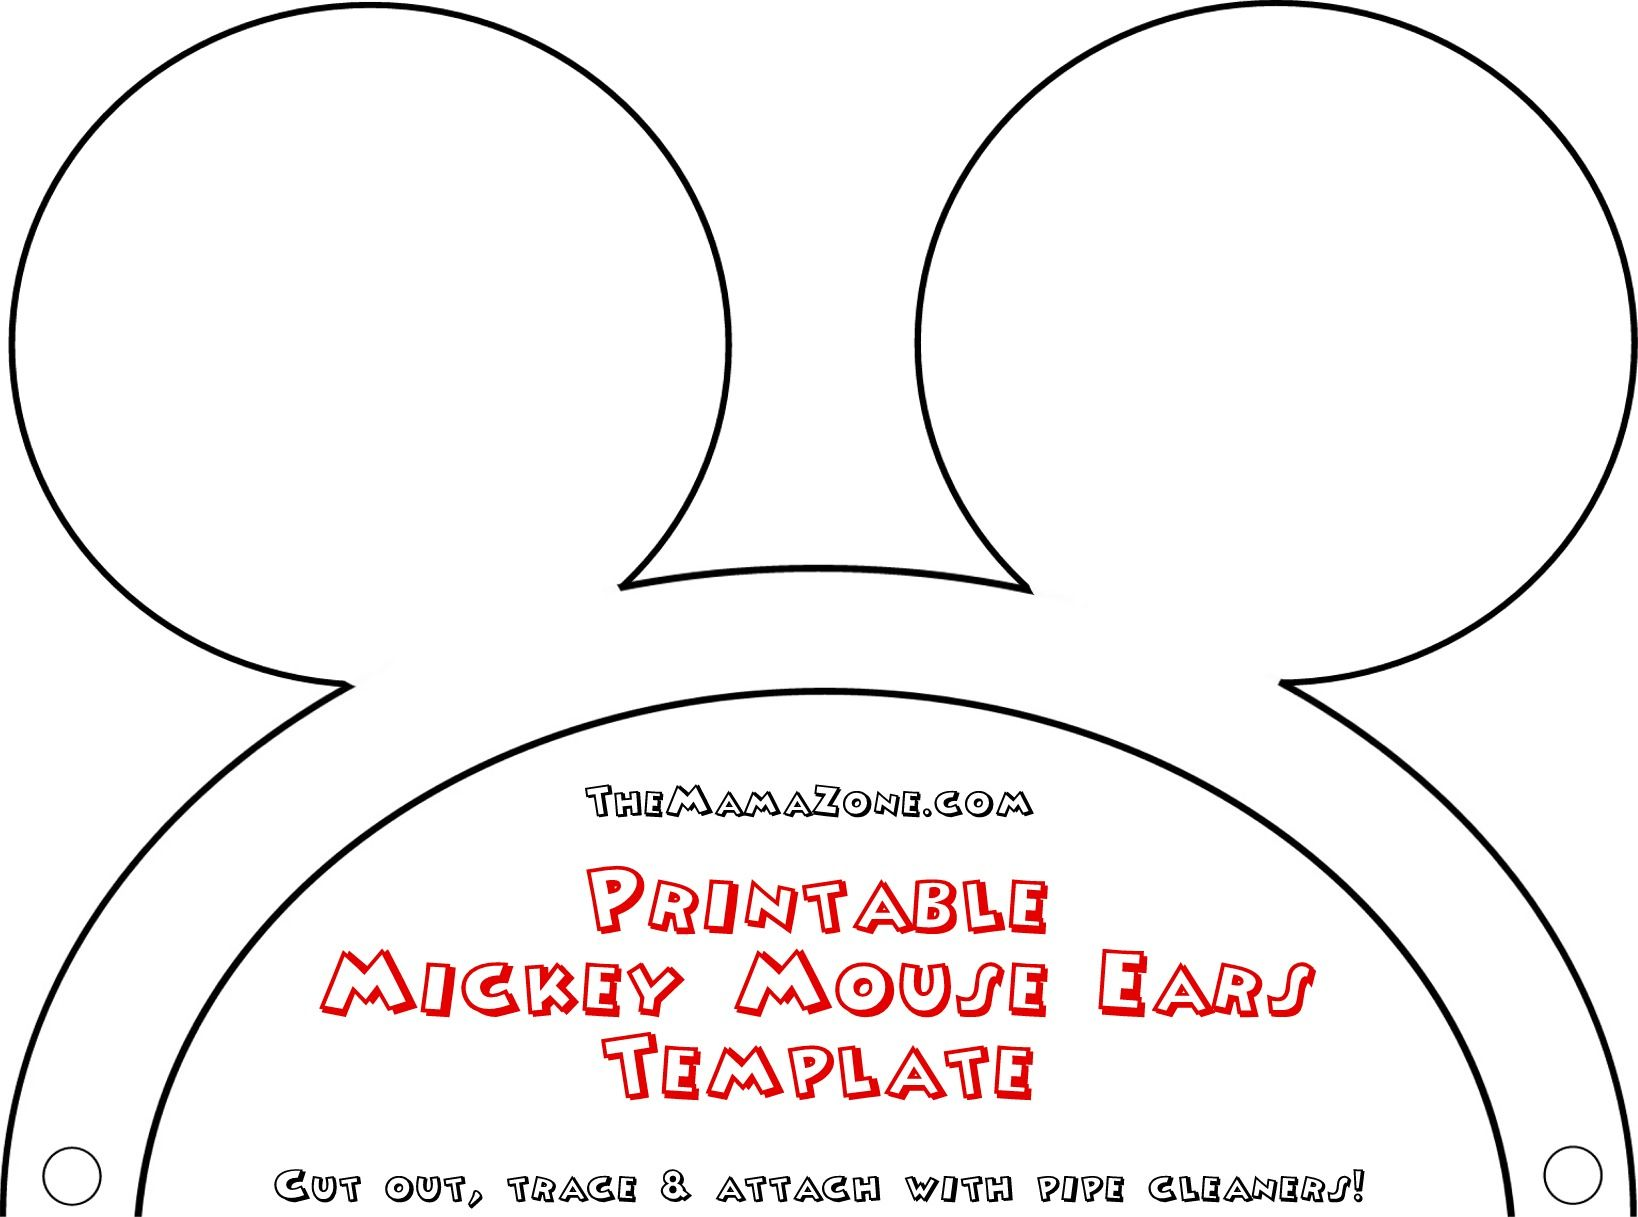 Click Here To Open The Printable Mickey Mouse Ear Template It Will In A New Window